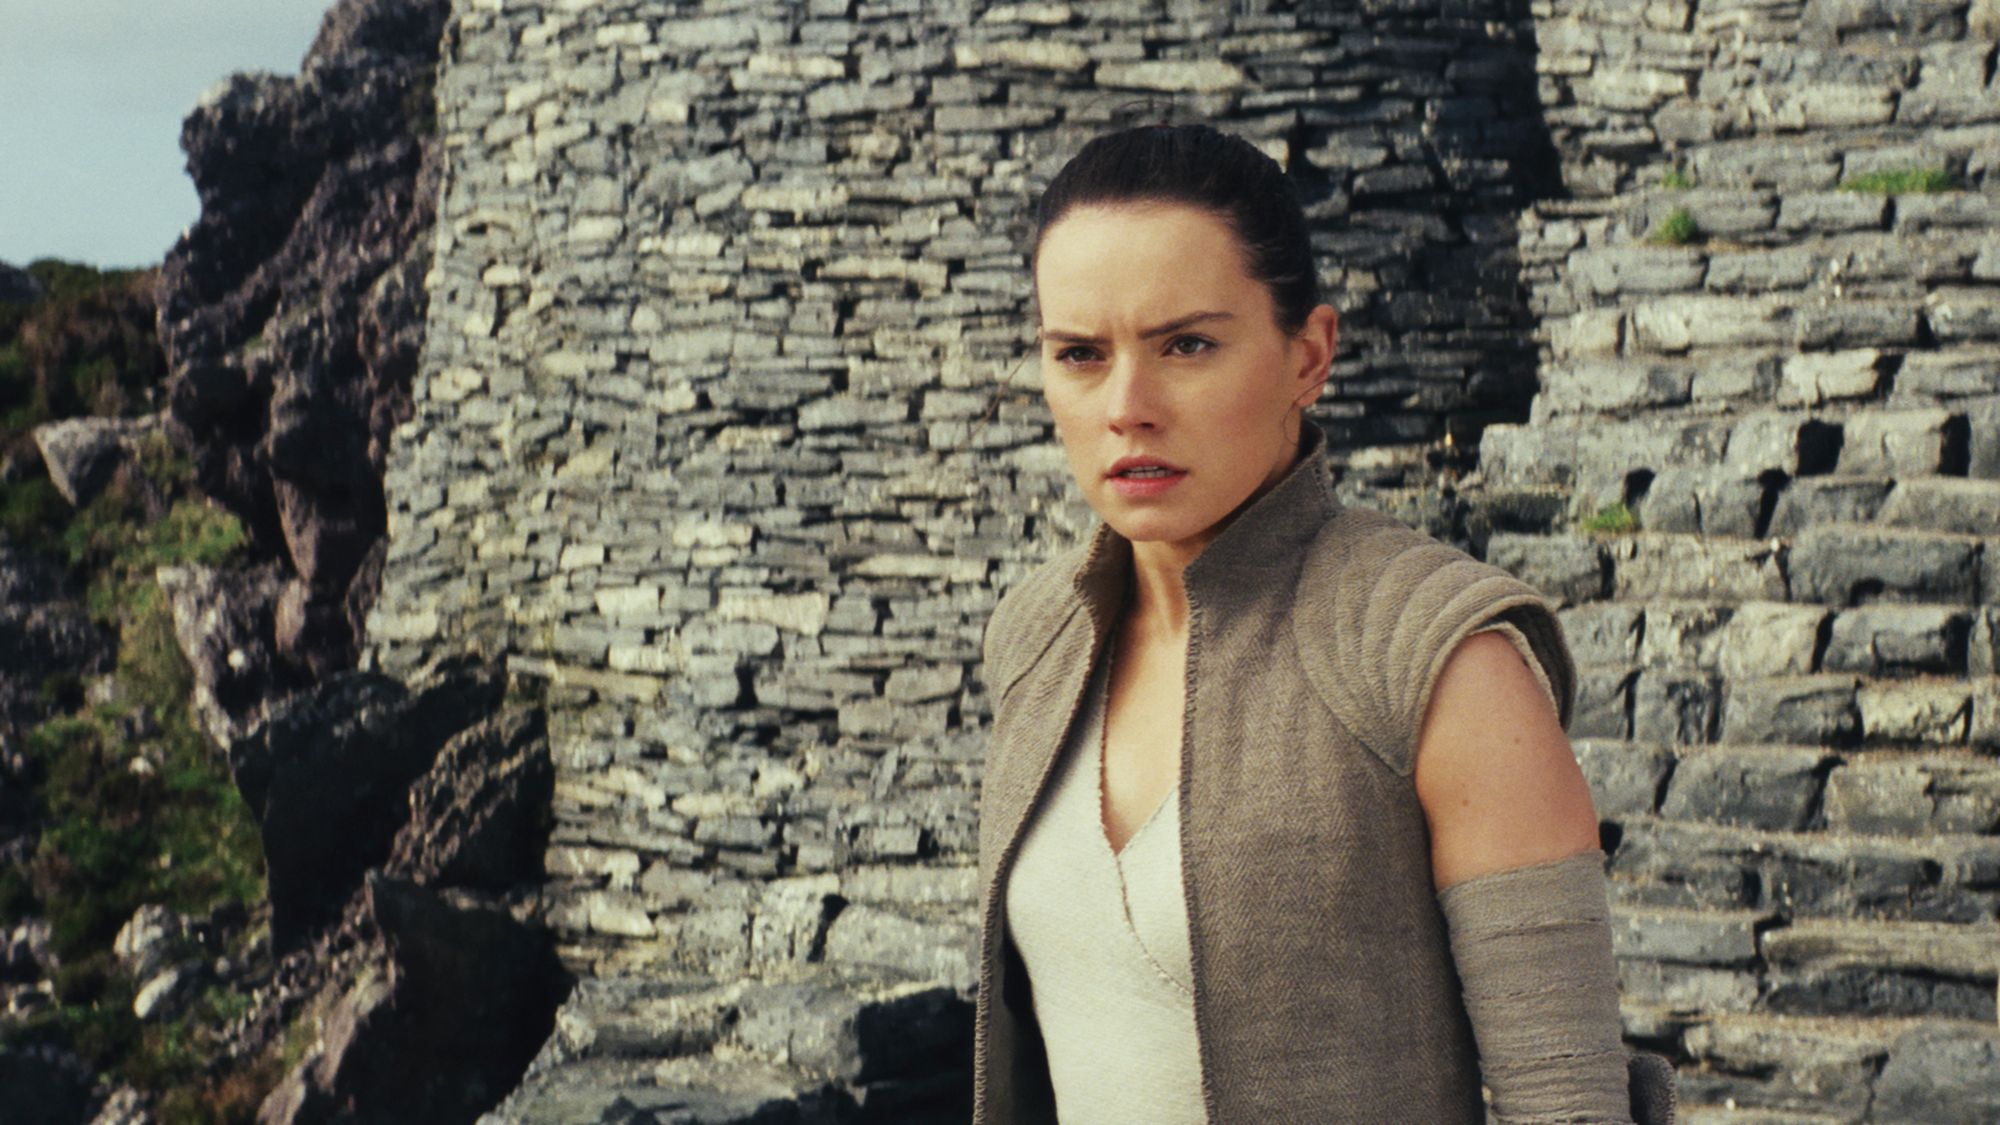 Star Wars The Last Jedi hub: Rey